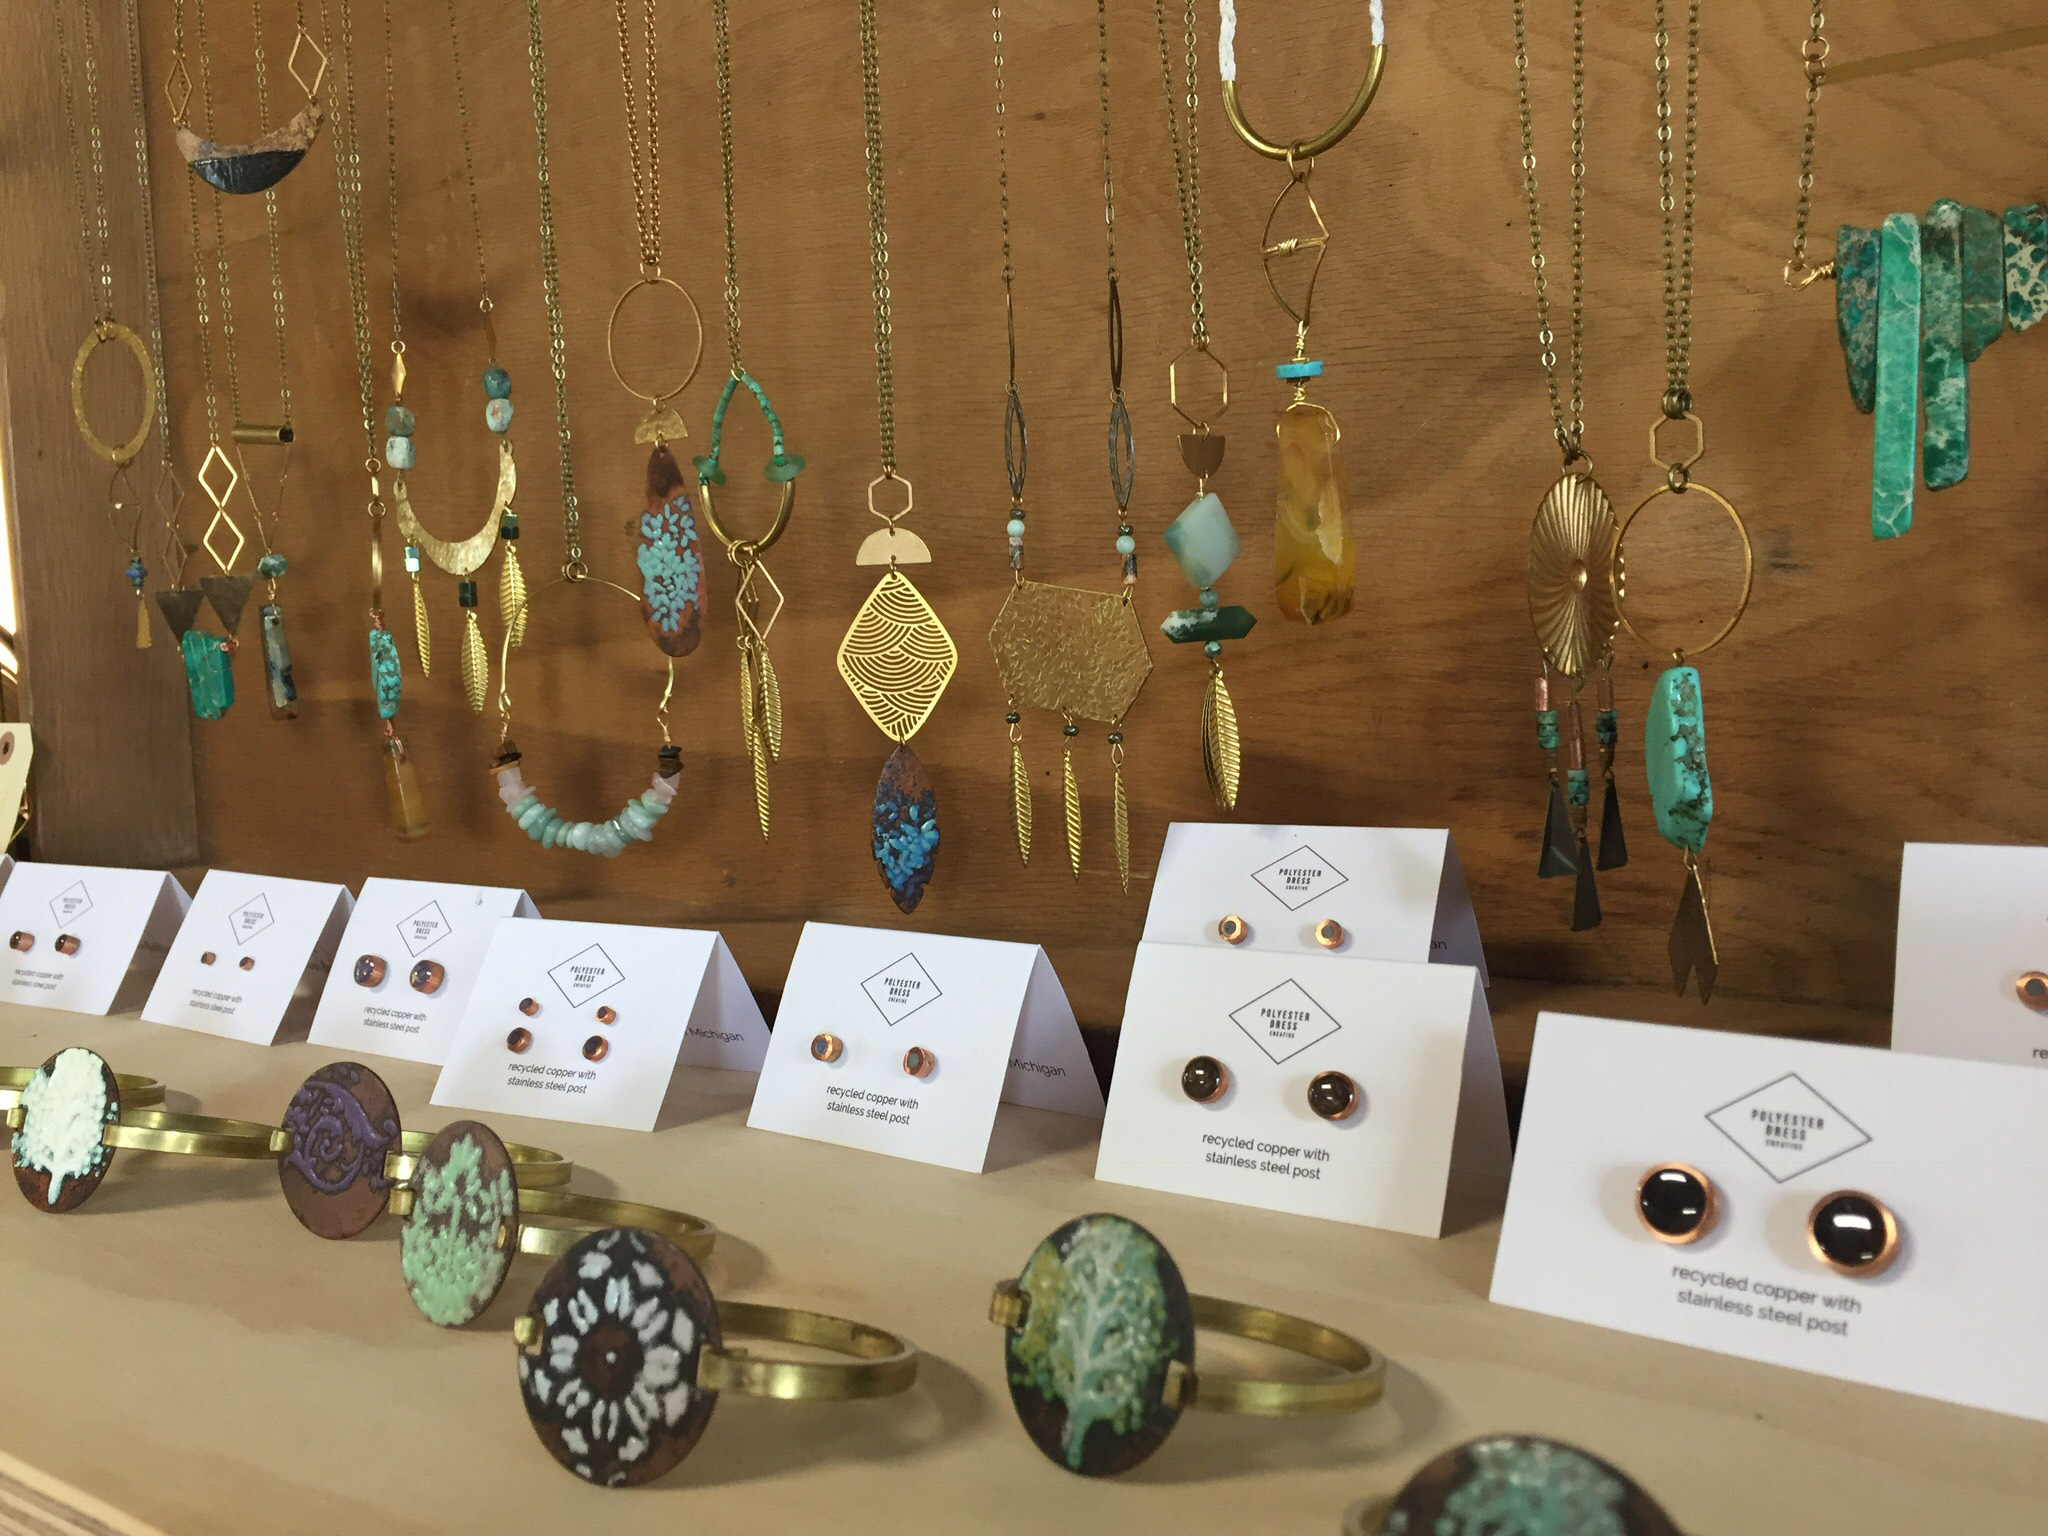 Nestology offers a great selection of jewelry.